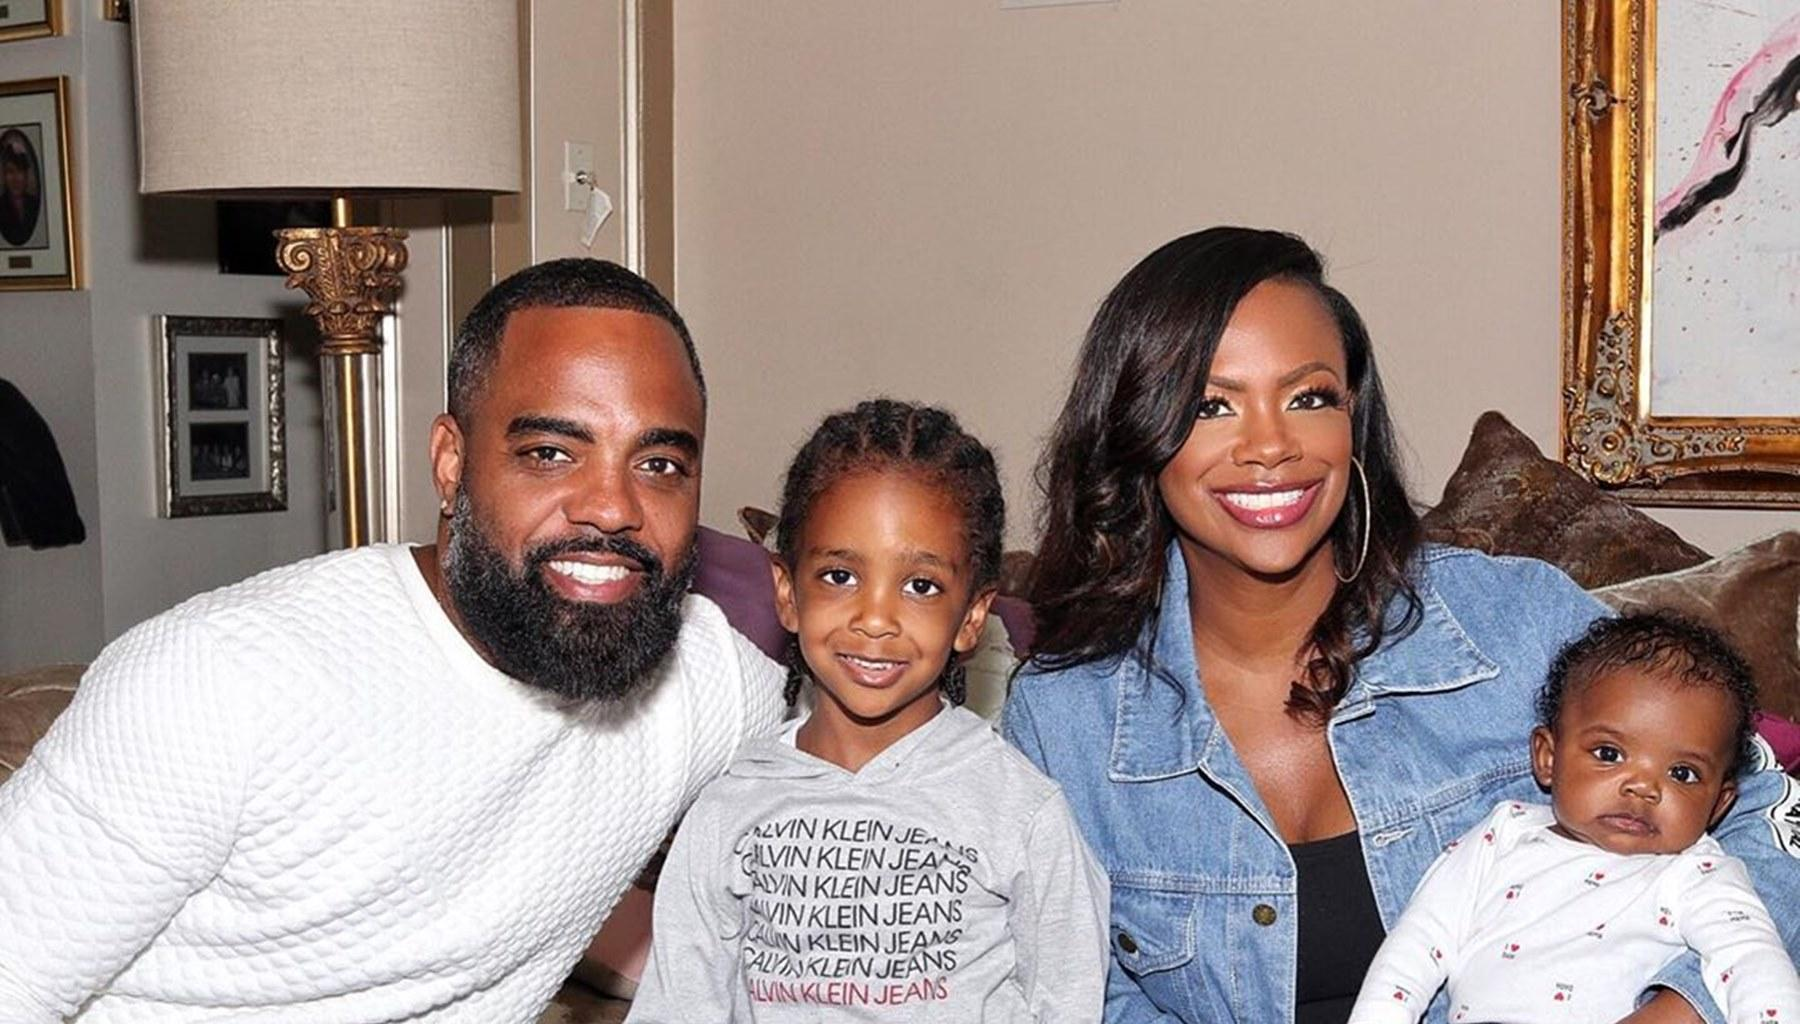 Kandi Burruss And Todd Tucker Brought Up Daughter Riley's Luxury Car In This Video, And They Are Slammed For It